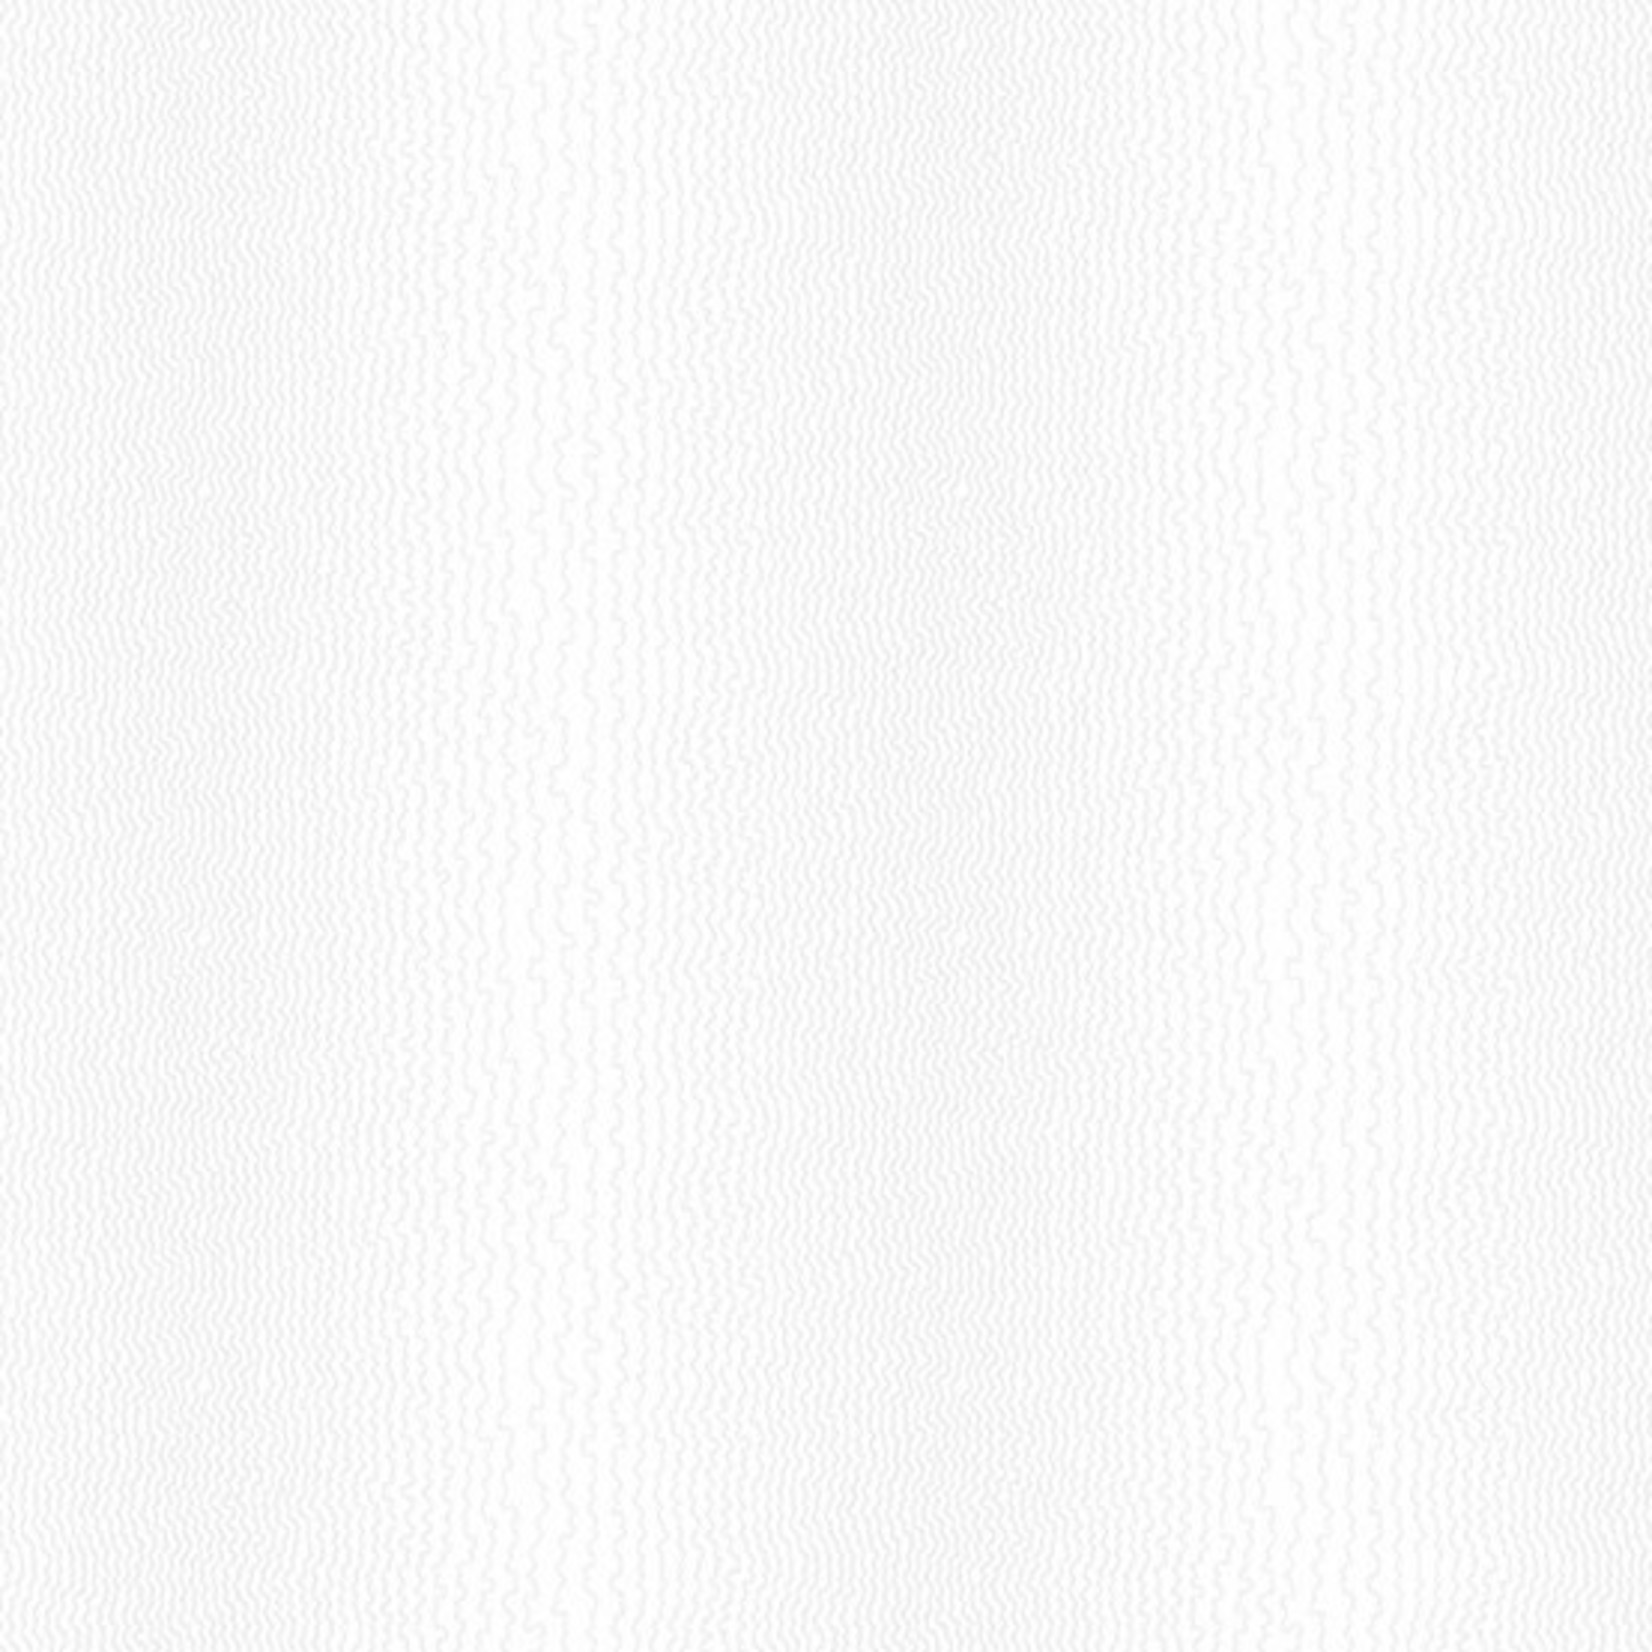 ANDOVER Century Whites, Ombre Stripe CS-9667-WW $0.18 per cm or $18/m